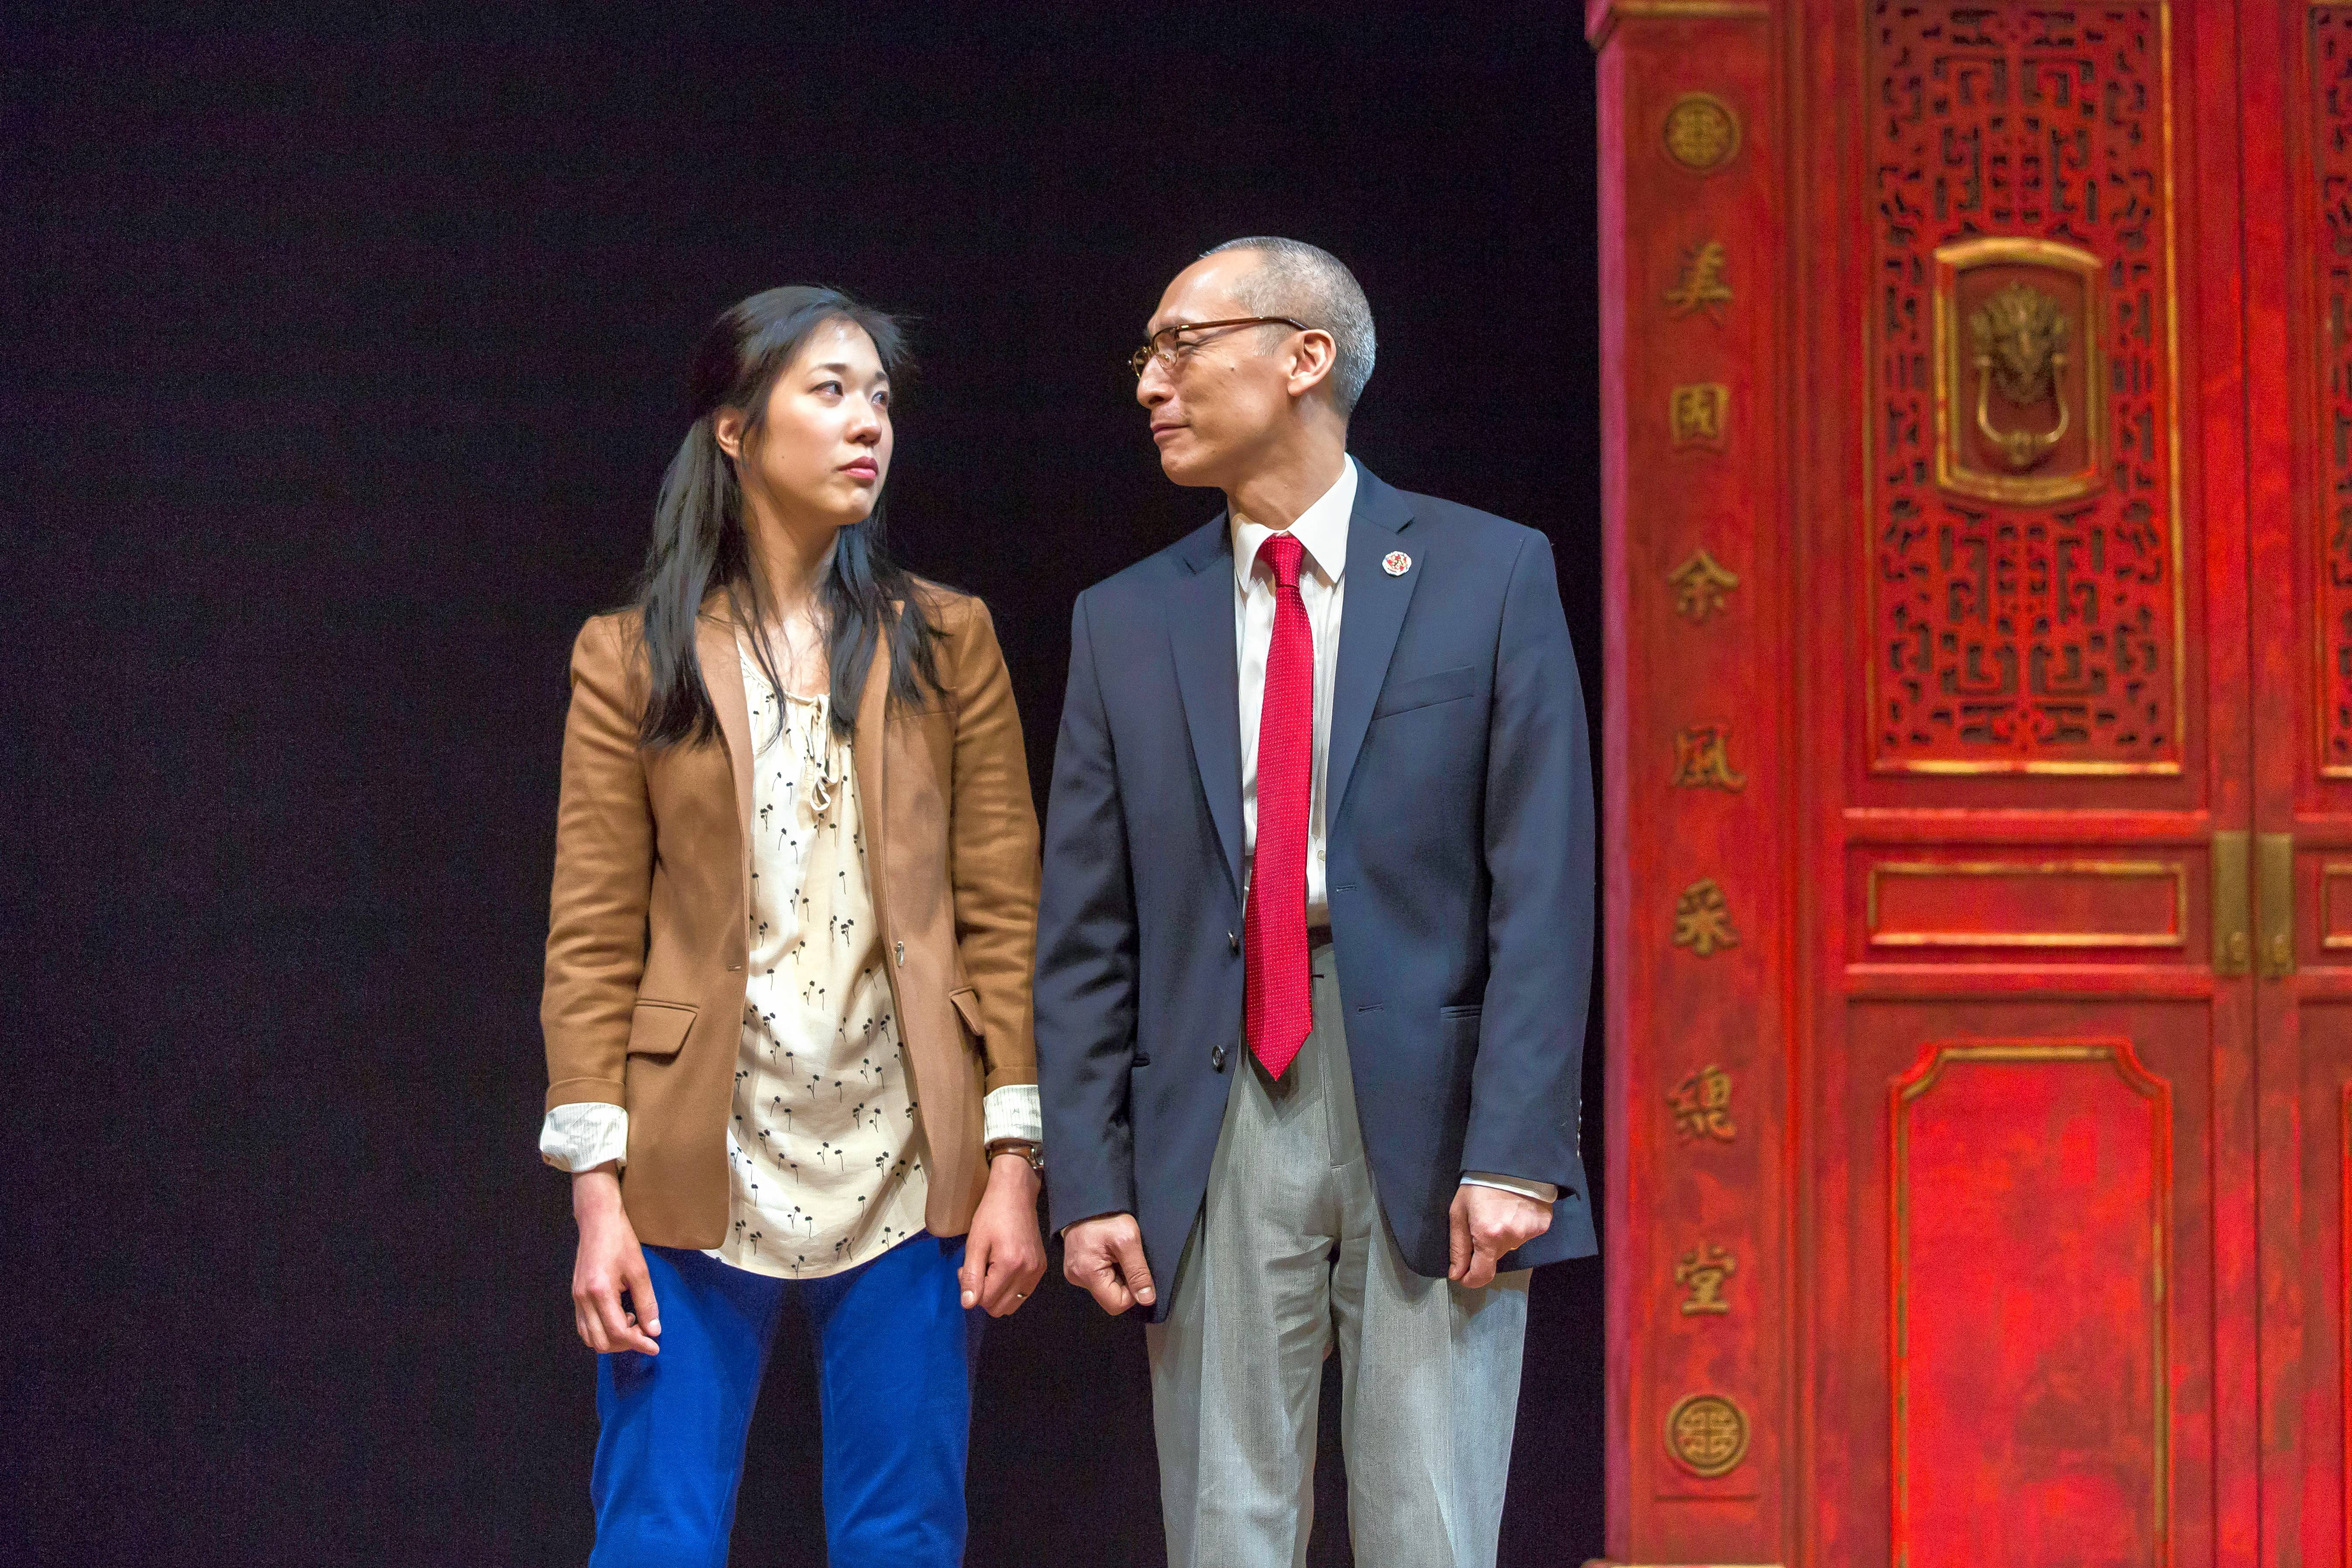 "Lauren (Stephenie Soohyun Park) and her father, Larry Yee (Francis Jue), don't always see eye-to-eye in the world premiere of Lauren Yee's ""King of the Yees"" at the Goodman Theatre in Chicago."